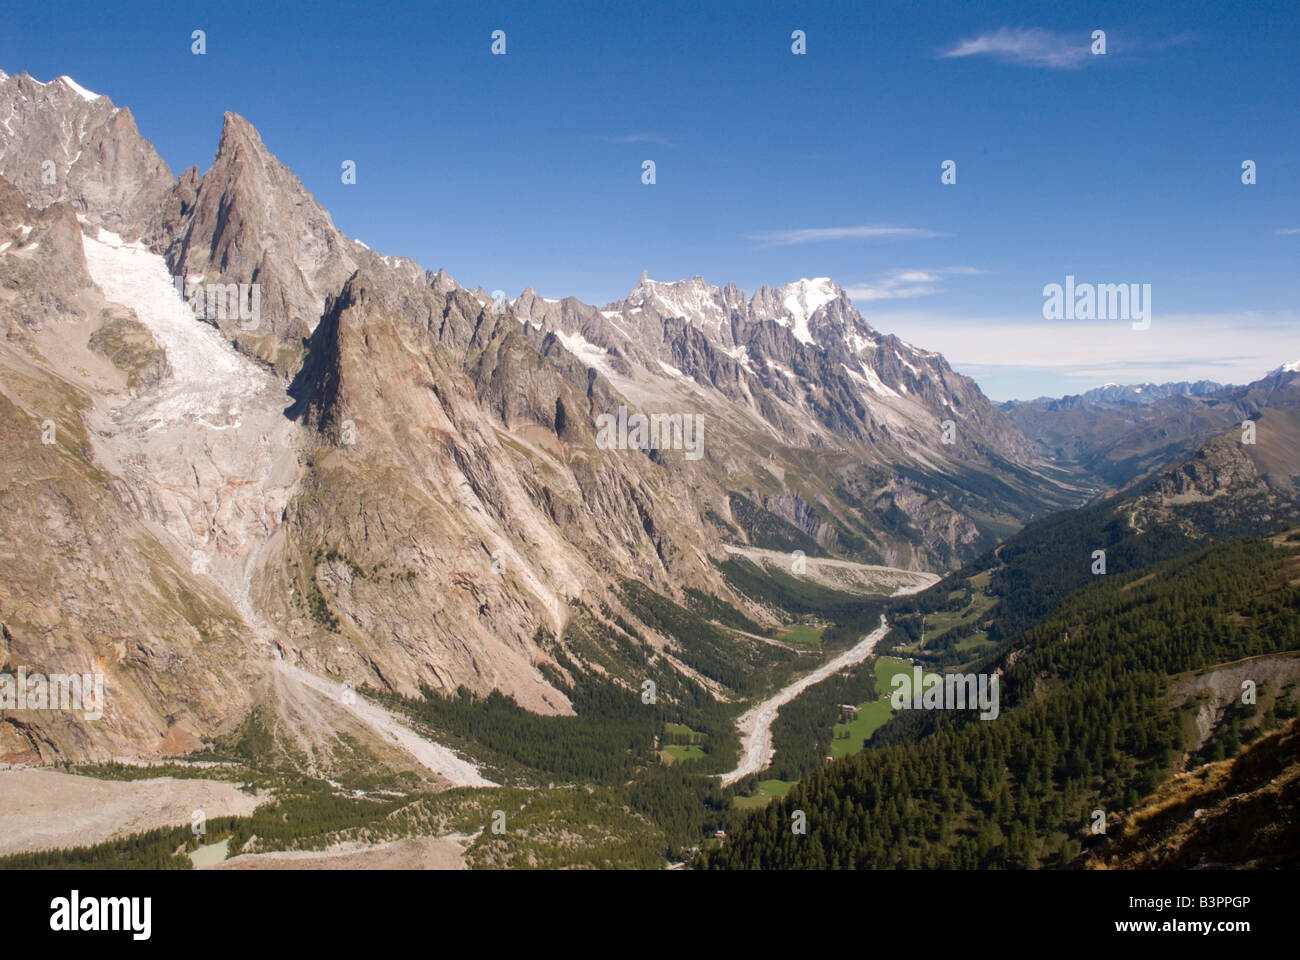 The green Val Veny runs beside the bare rock and ice of the Mont Blanc Massif. - Stock Image